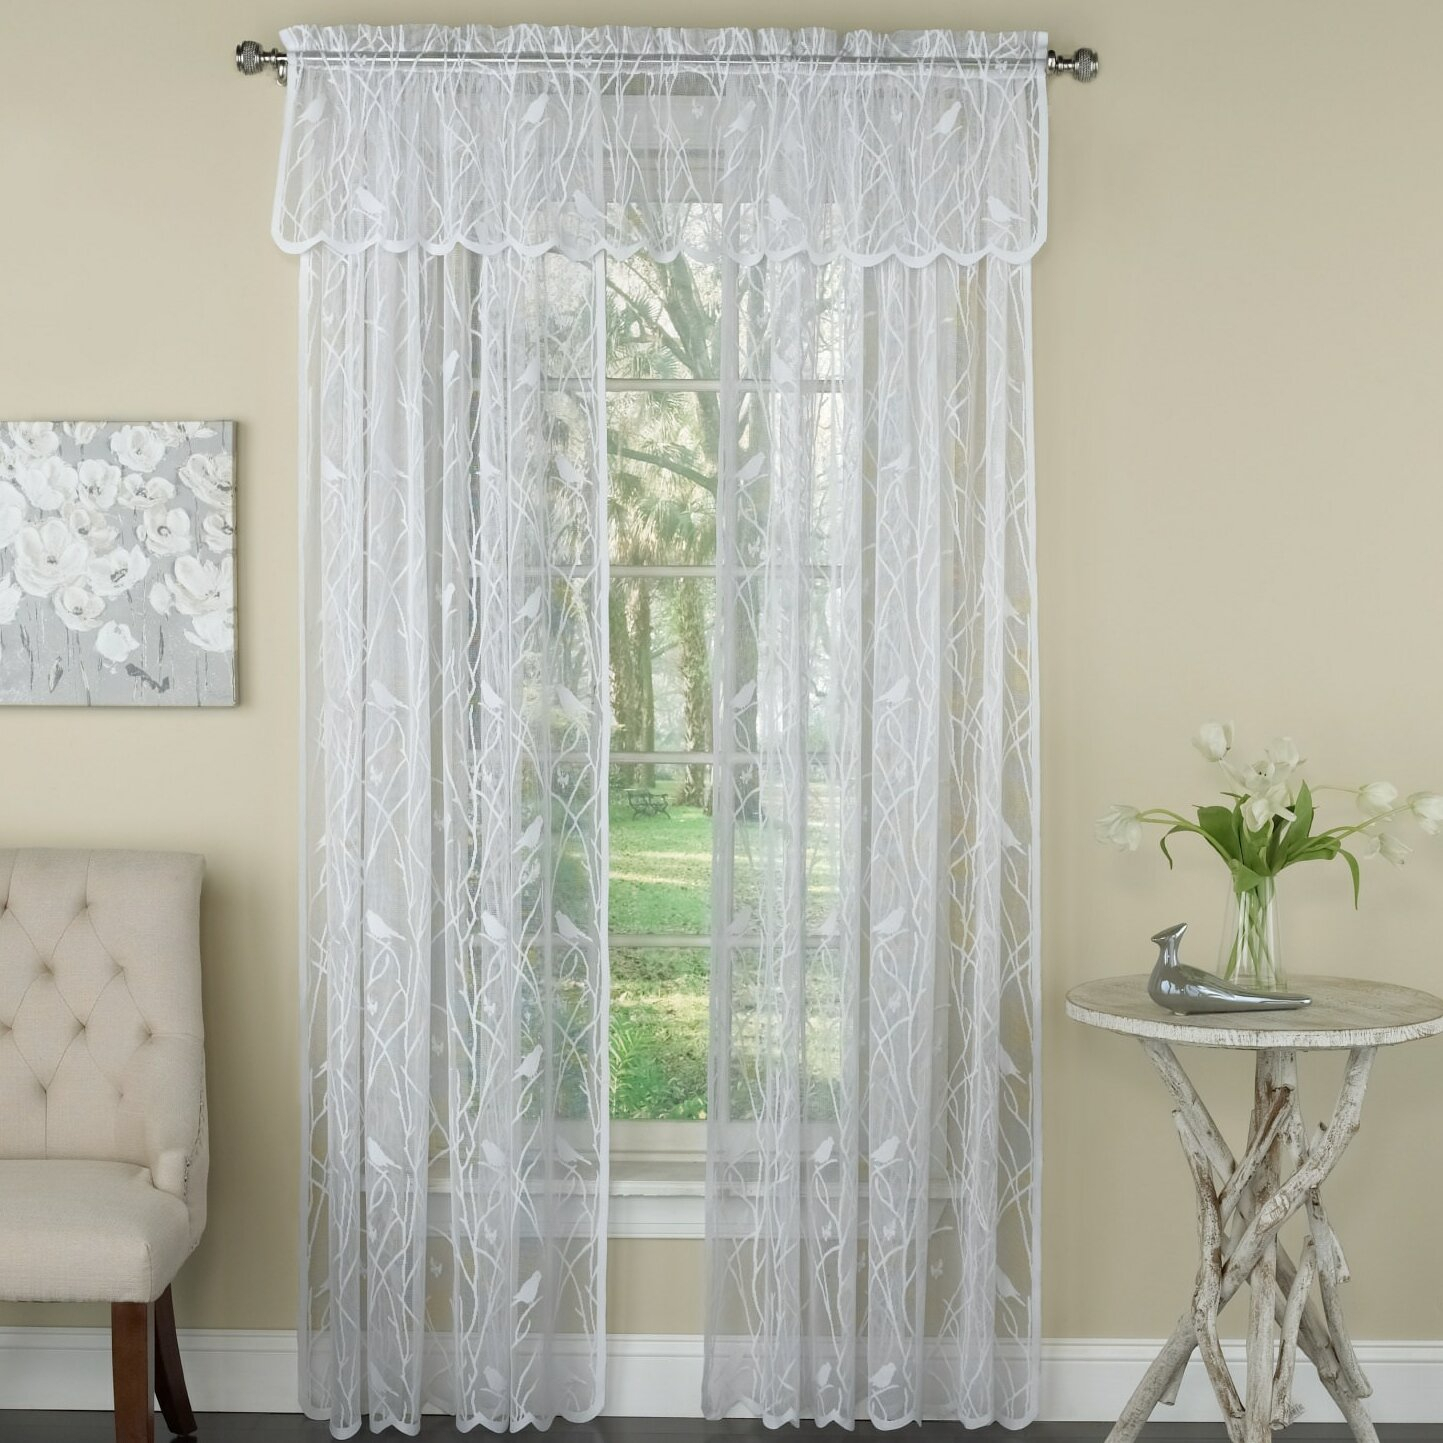 Prevatte Bird Song Lace Tier Pair Nature/floral Semi Sheer Rod Pocket Single Window Curtain With Regard To Luxurious Old World Style Lace Window Curtain Panels (View 14 of 20)